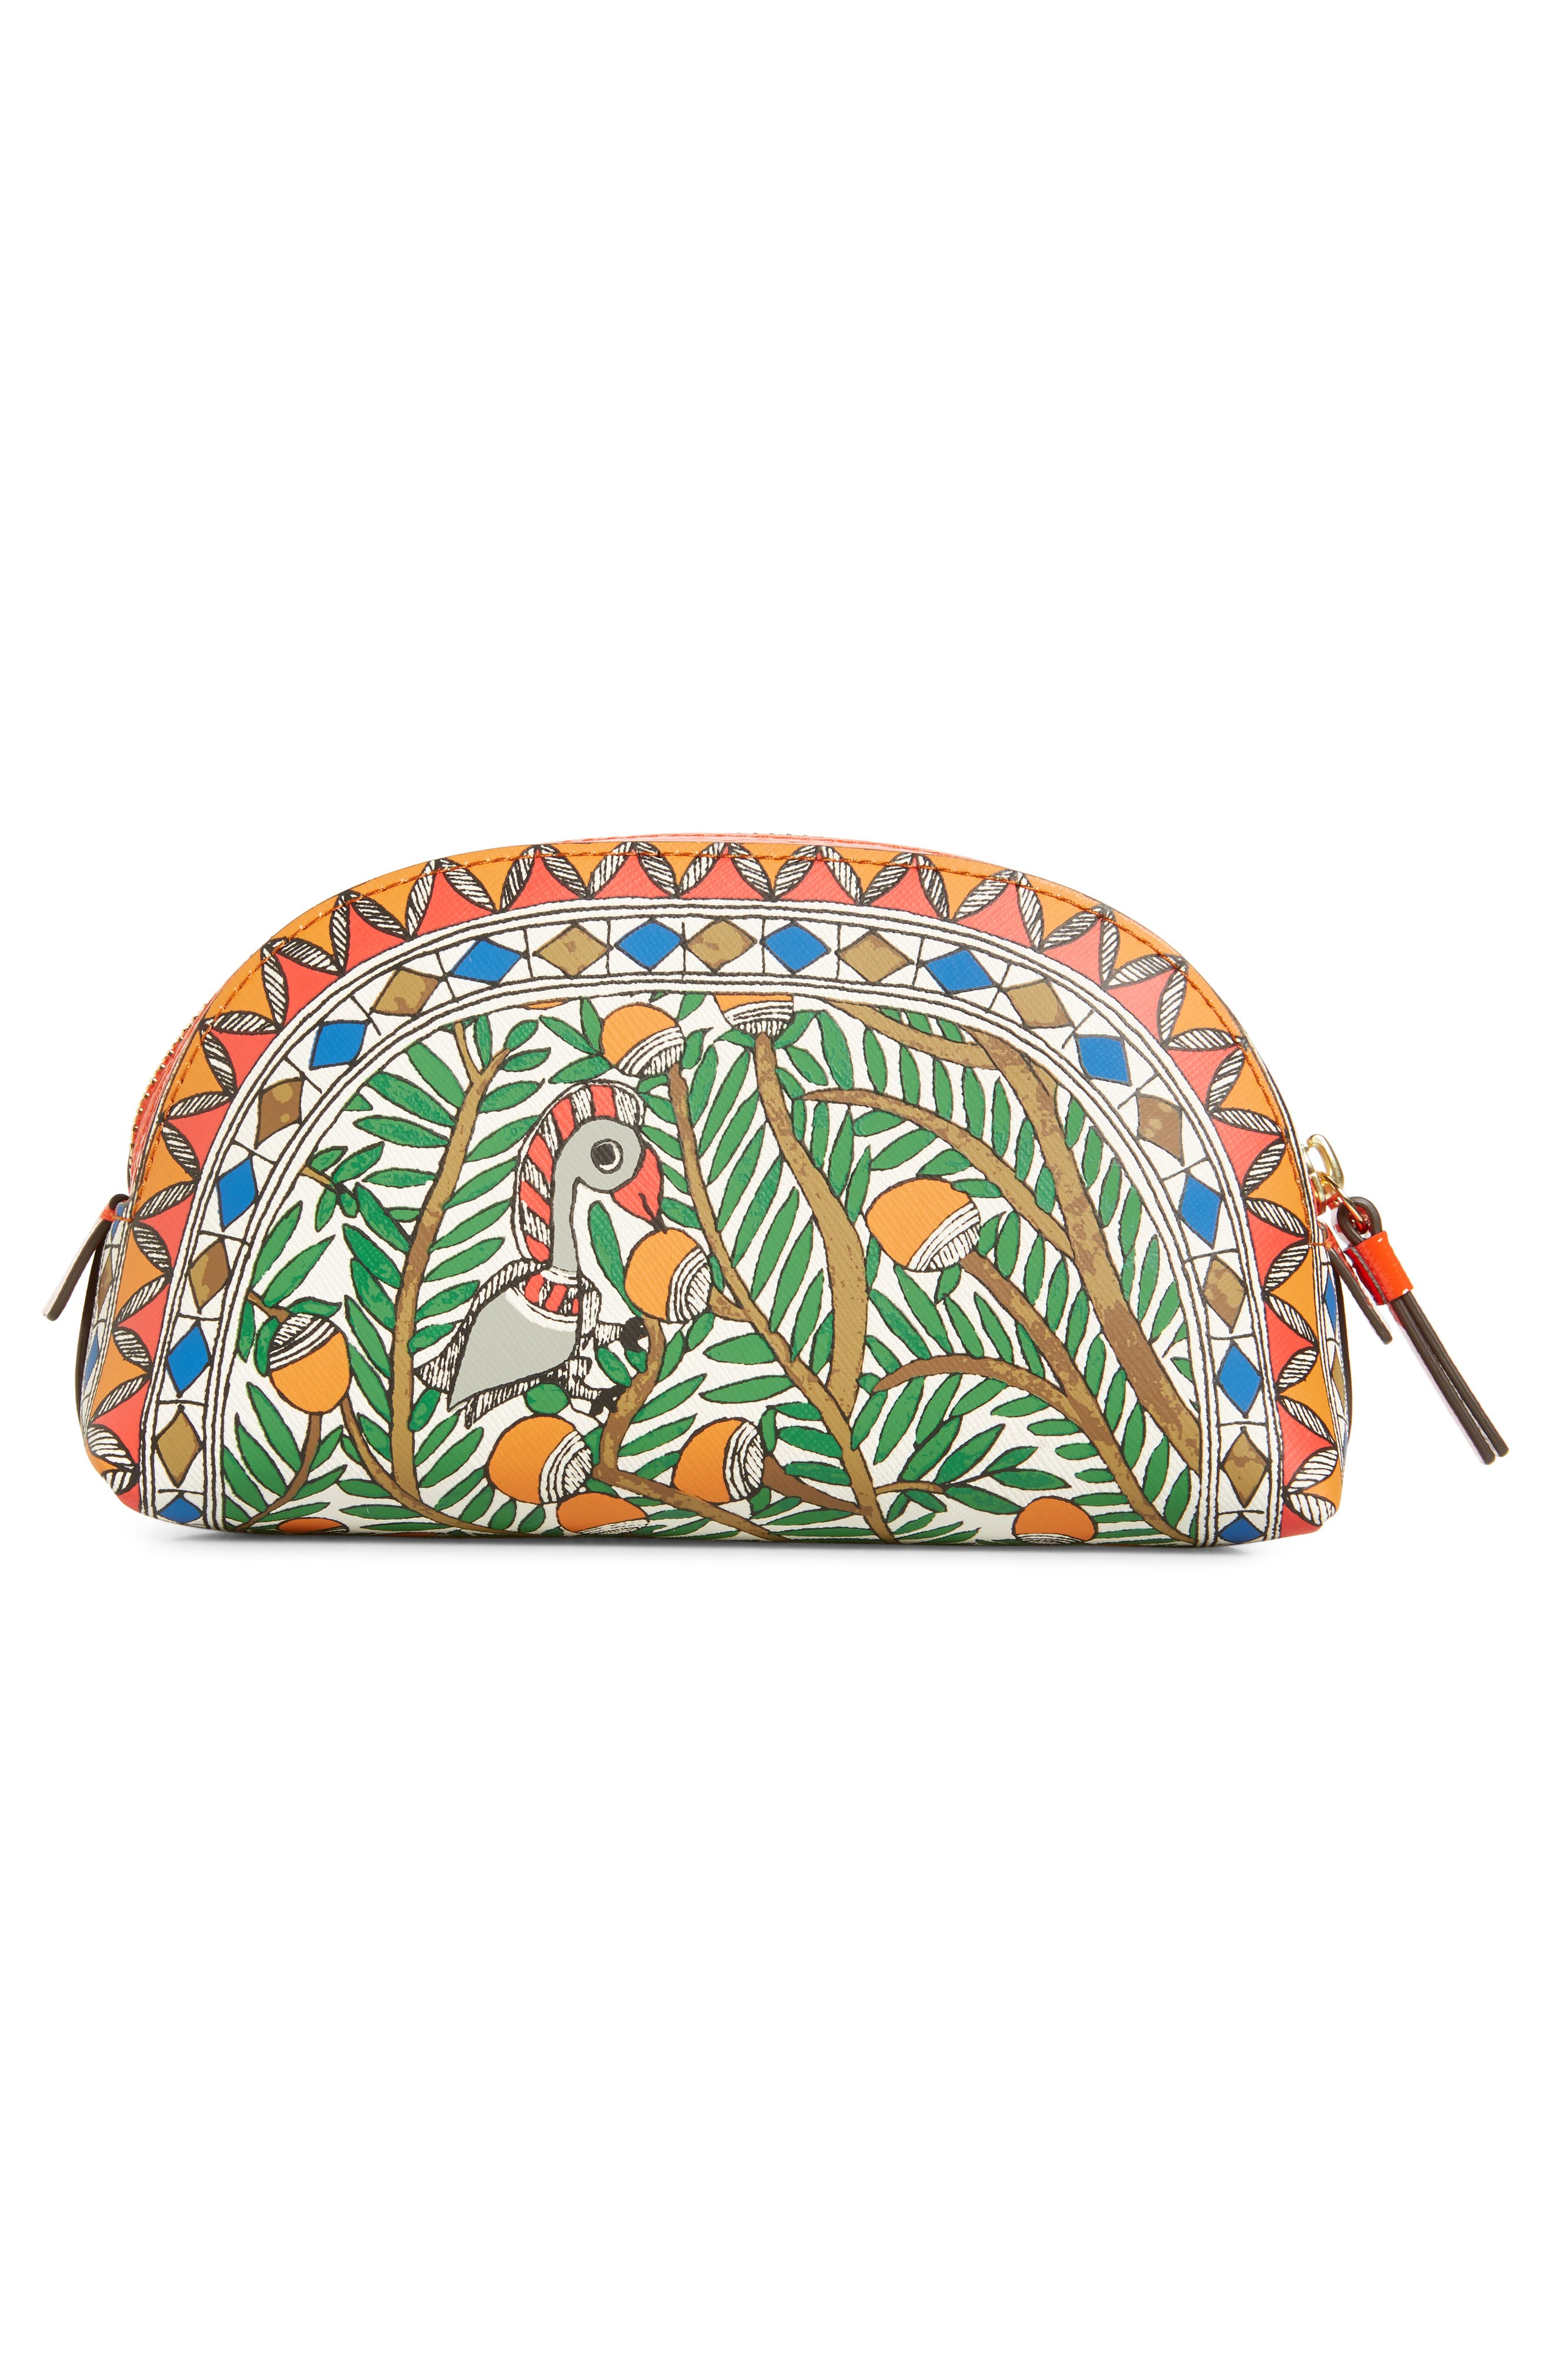 TORY BURCH,                             Small Robinson Cosmetic Case,                             Alternate thumbnail 2, color,                             SOMETHING WILD